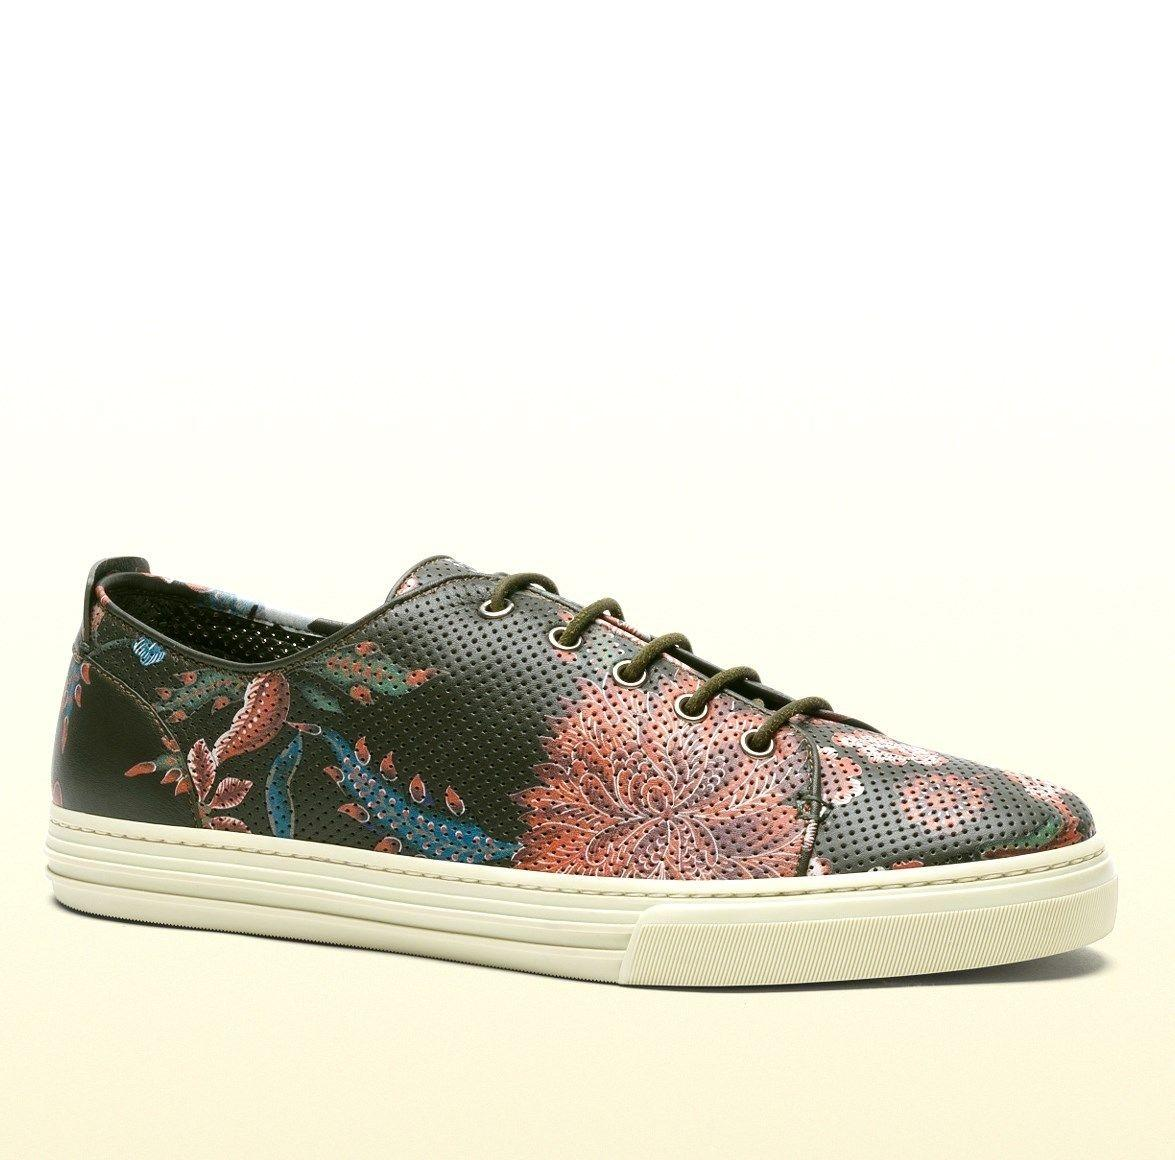 Gucci Multi-color 3035 Men's Flower Print Leather Lace-up 342049 Size 10 G  ...